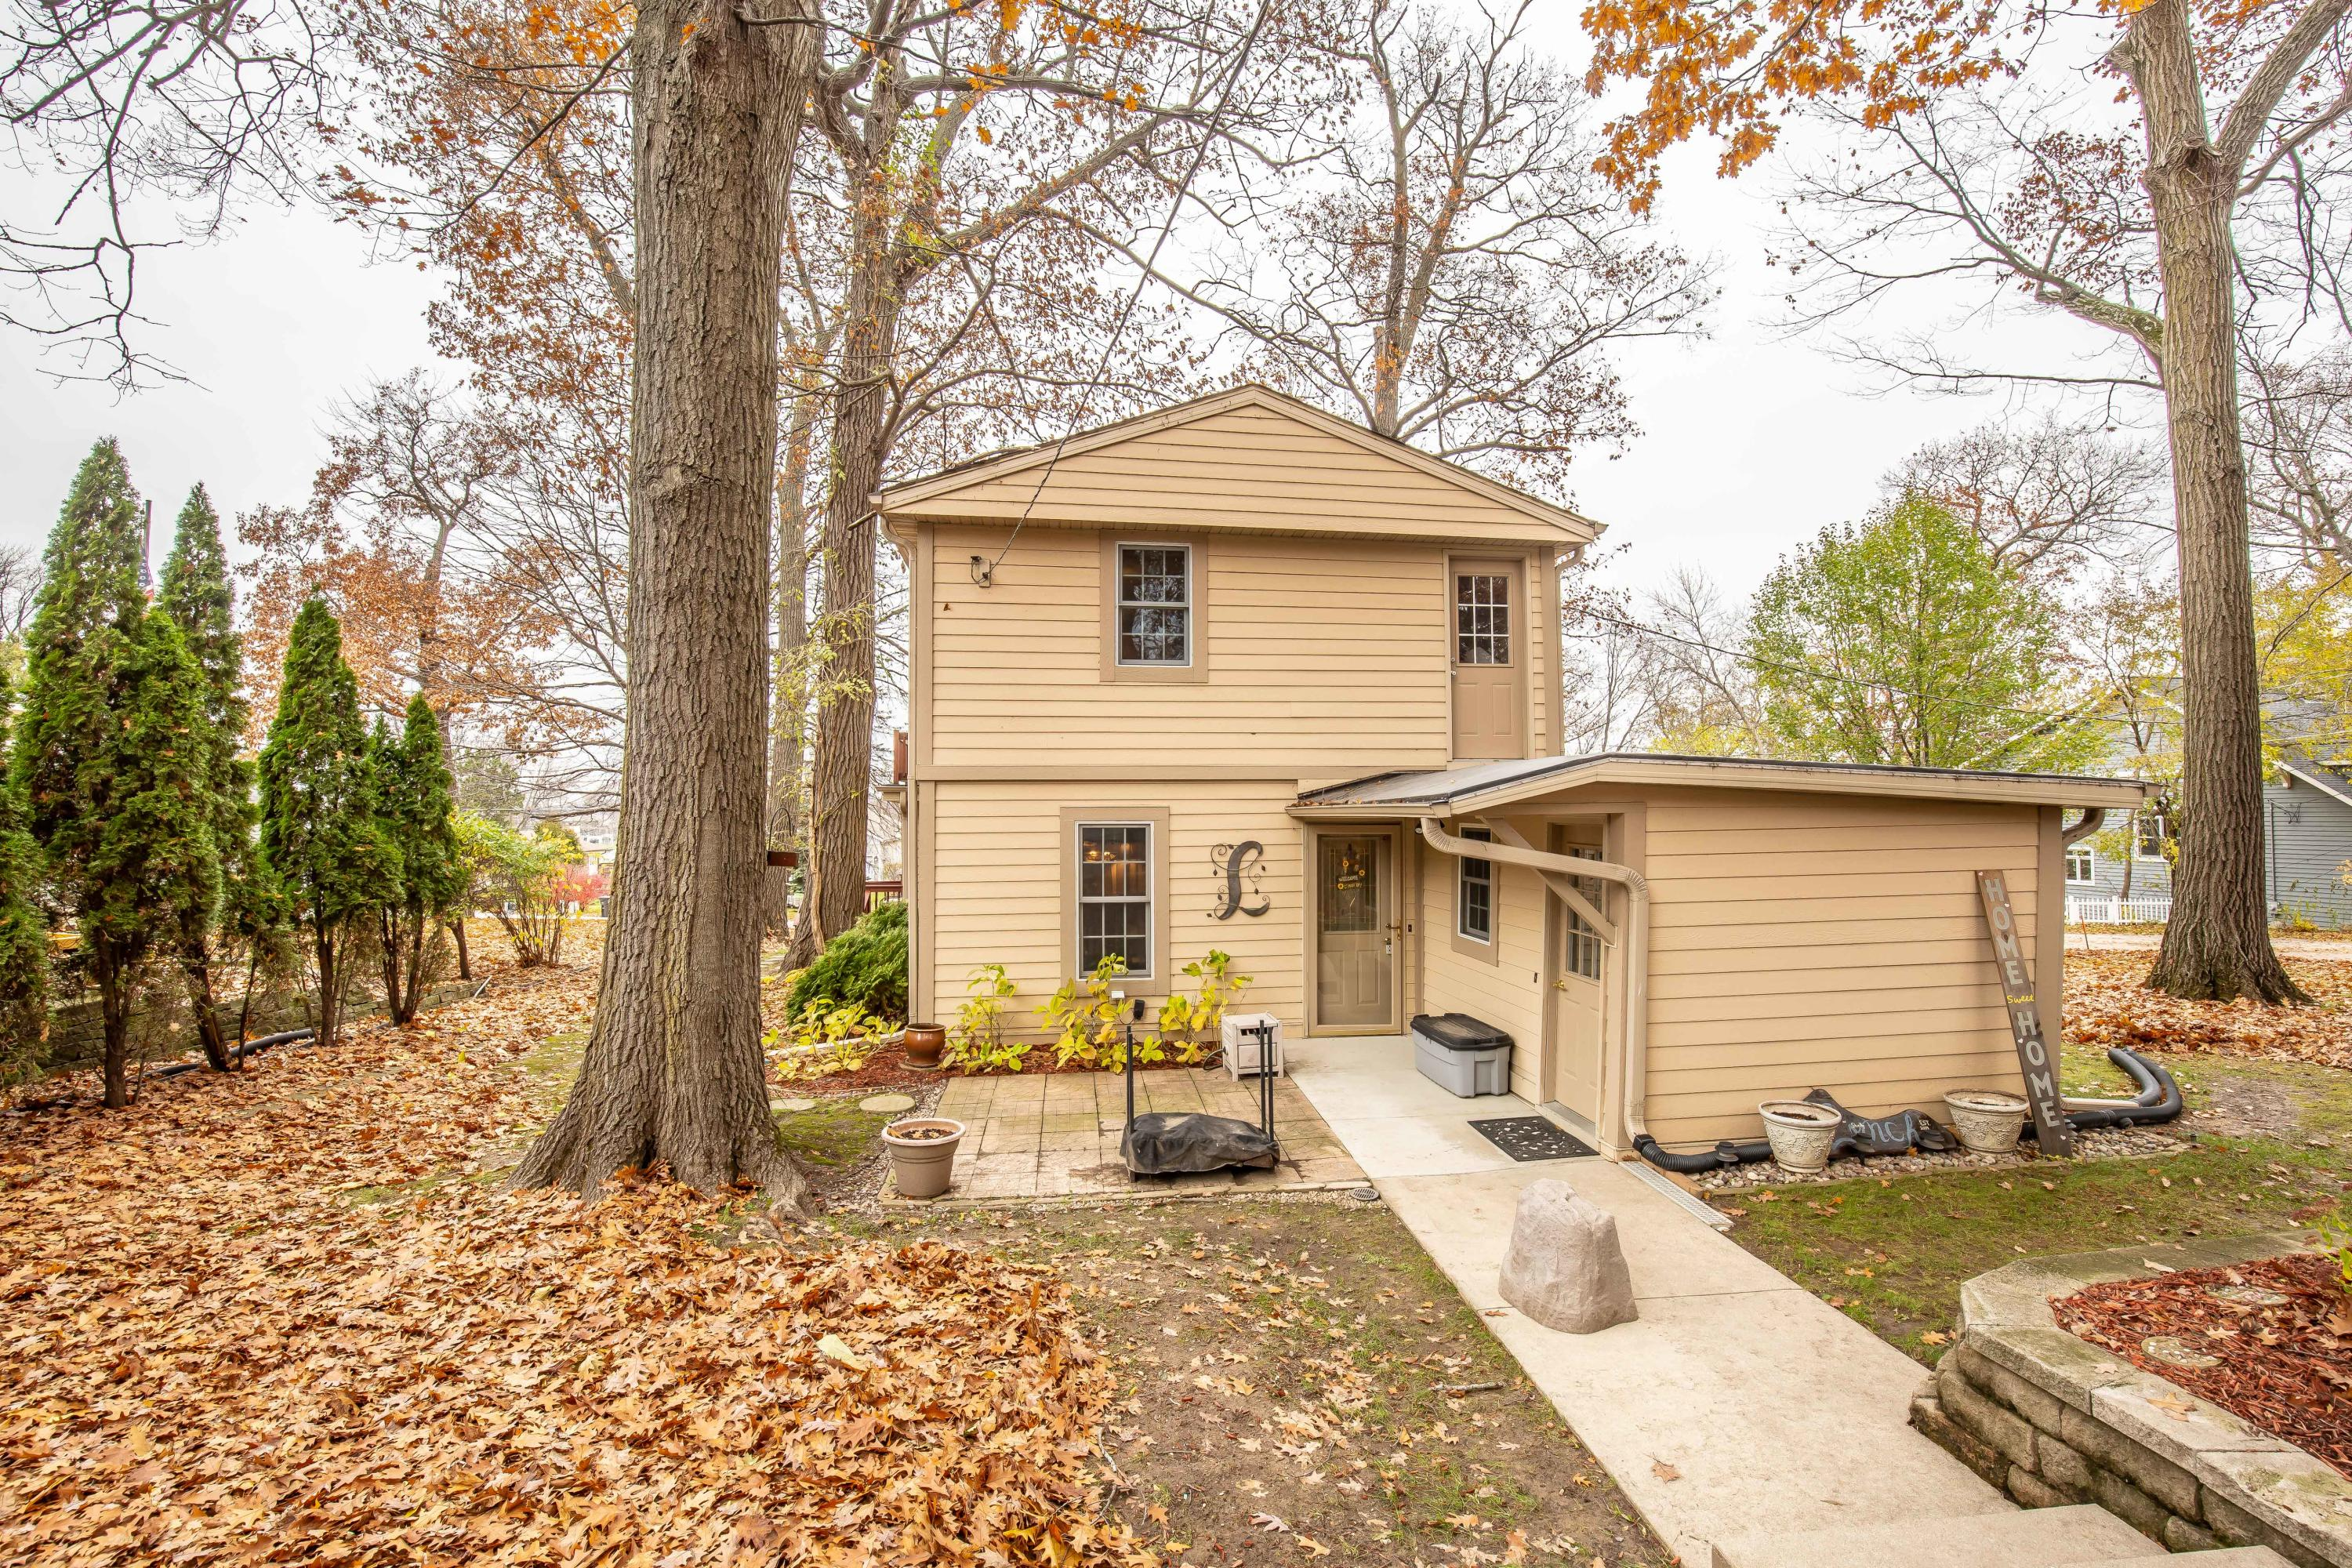 N27W27391 Woodland Dr, Pewaukee, Wisconsin 53072, 2 Bedrooms Bedrooms, 7 Rooms Rooms,2 BathroomsBathrooms,Single-Family,For Sale,Woodland Dr,1613849